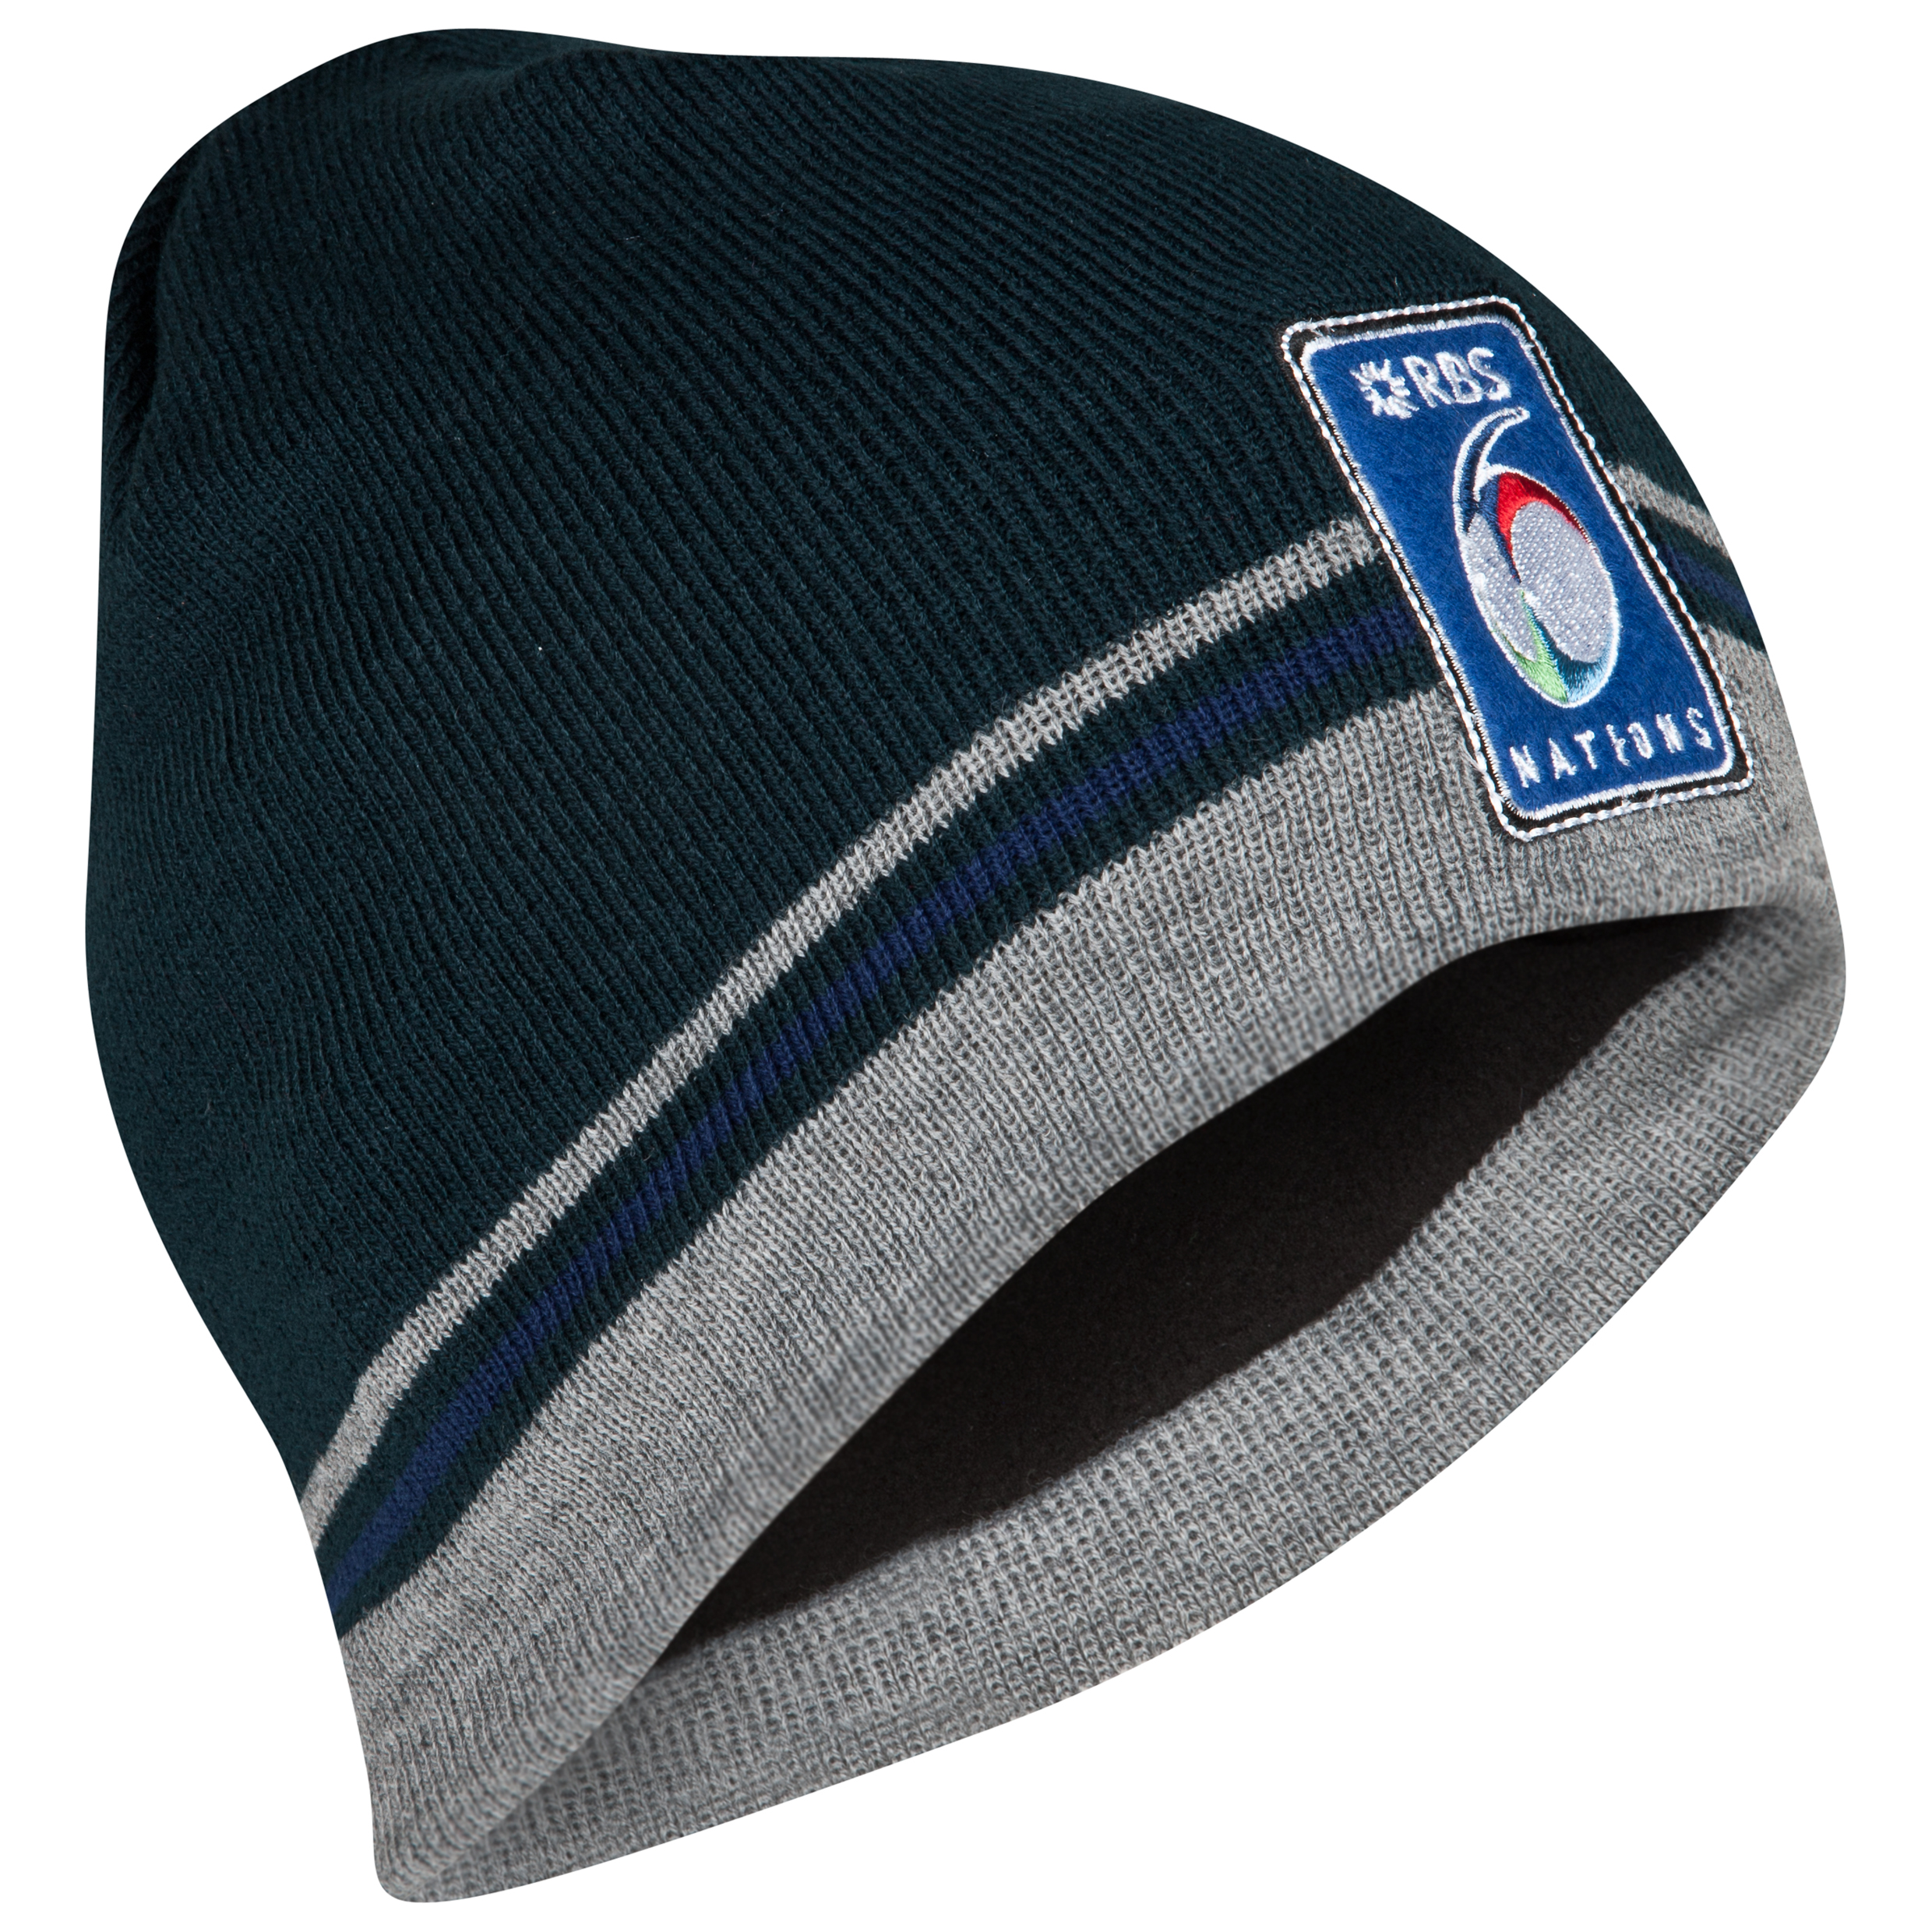 RBS 6 Nations Classic Beanie - Navy